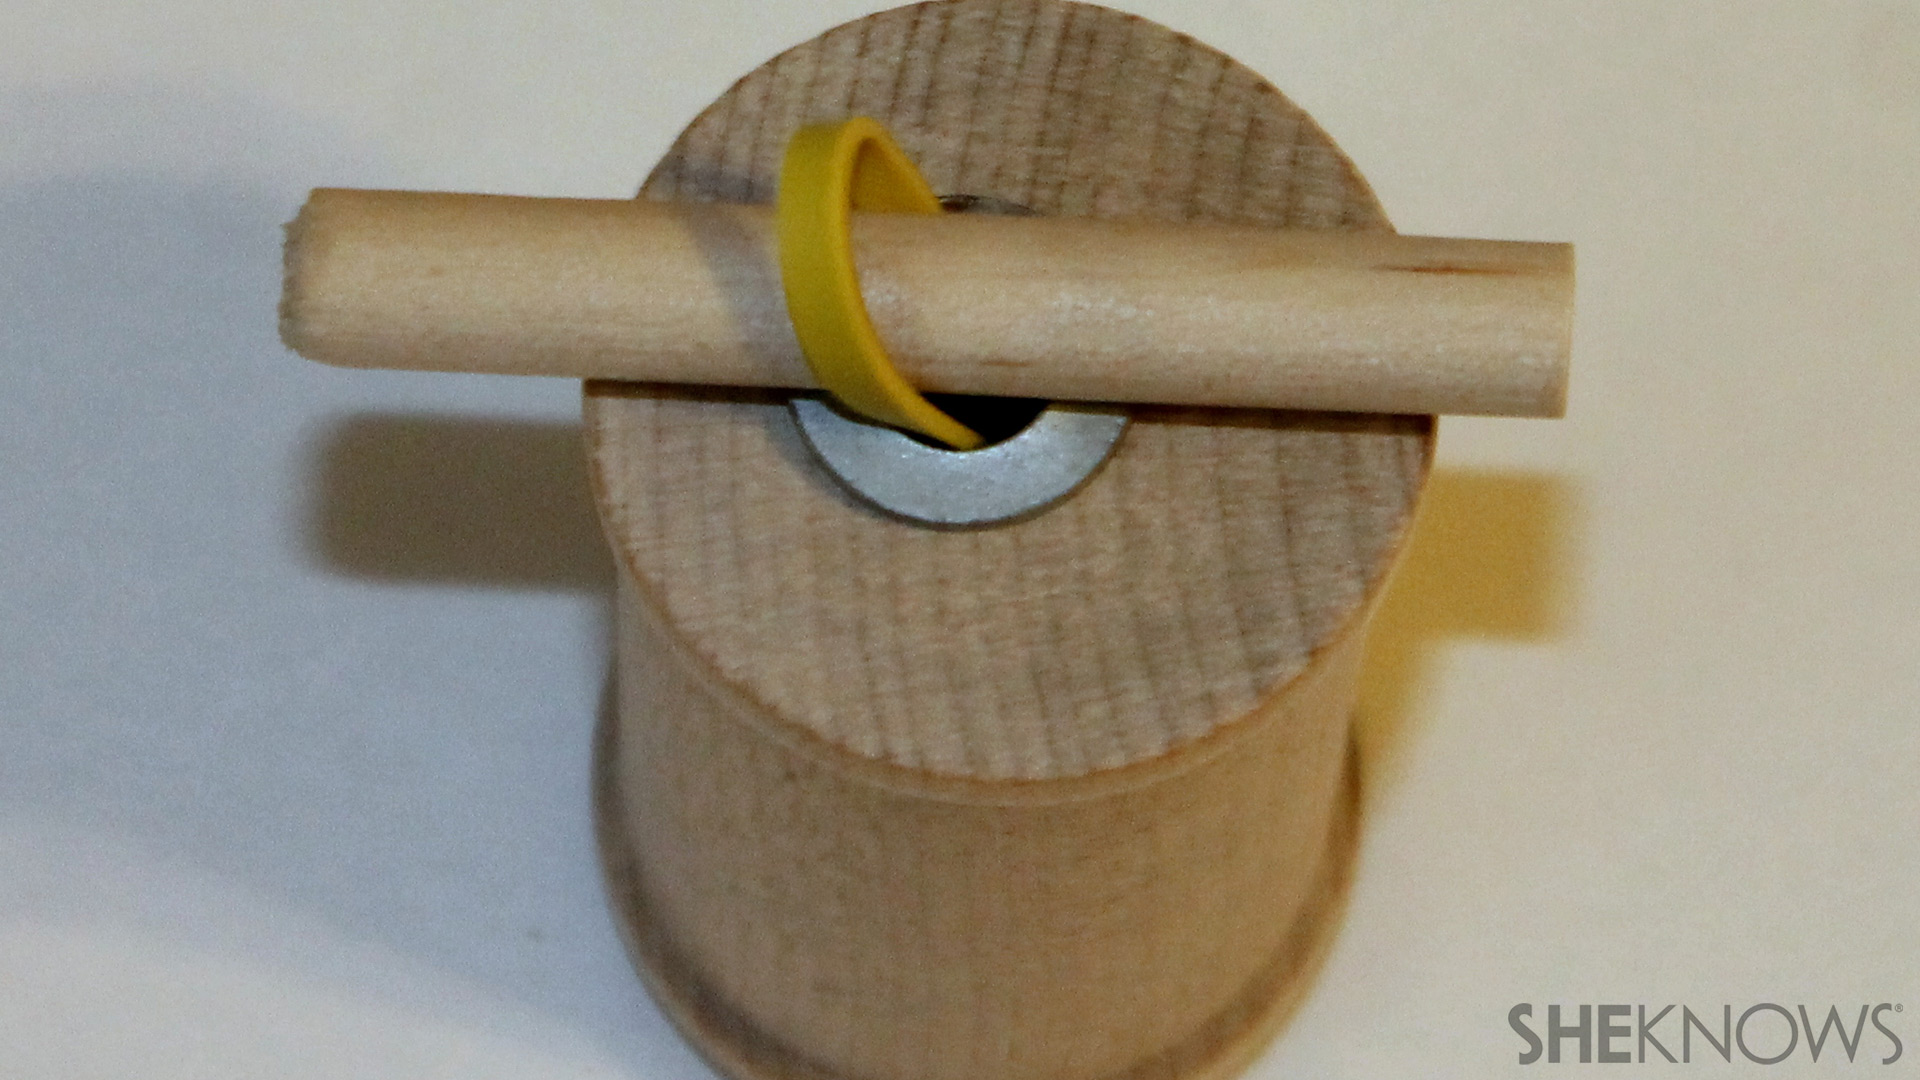 Thread a dowel through the loop of the rubber band